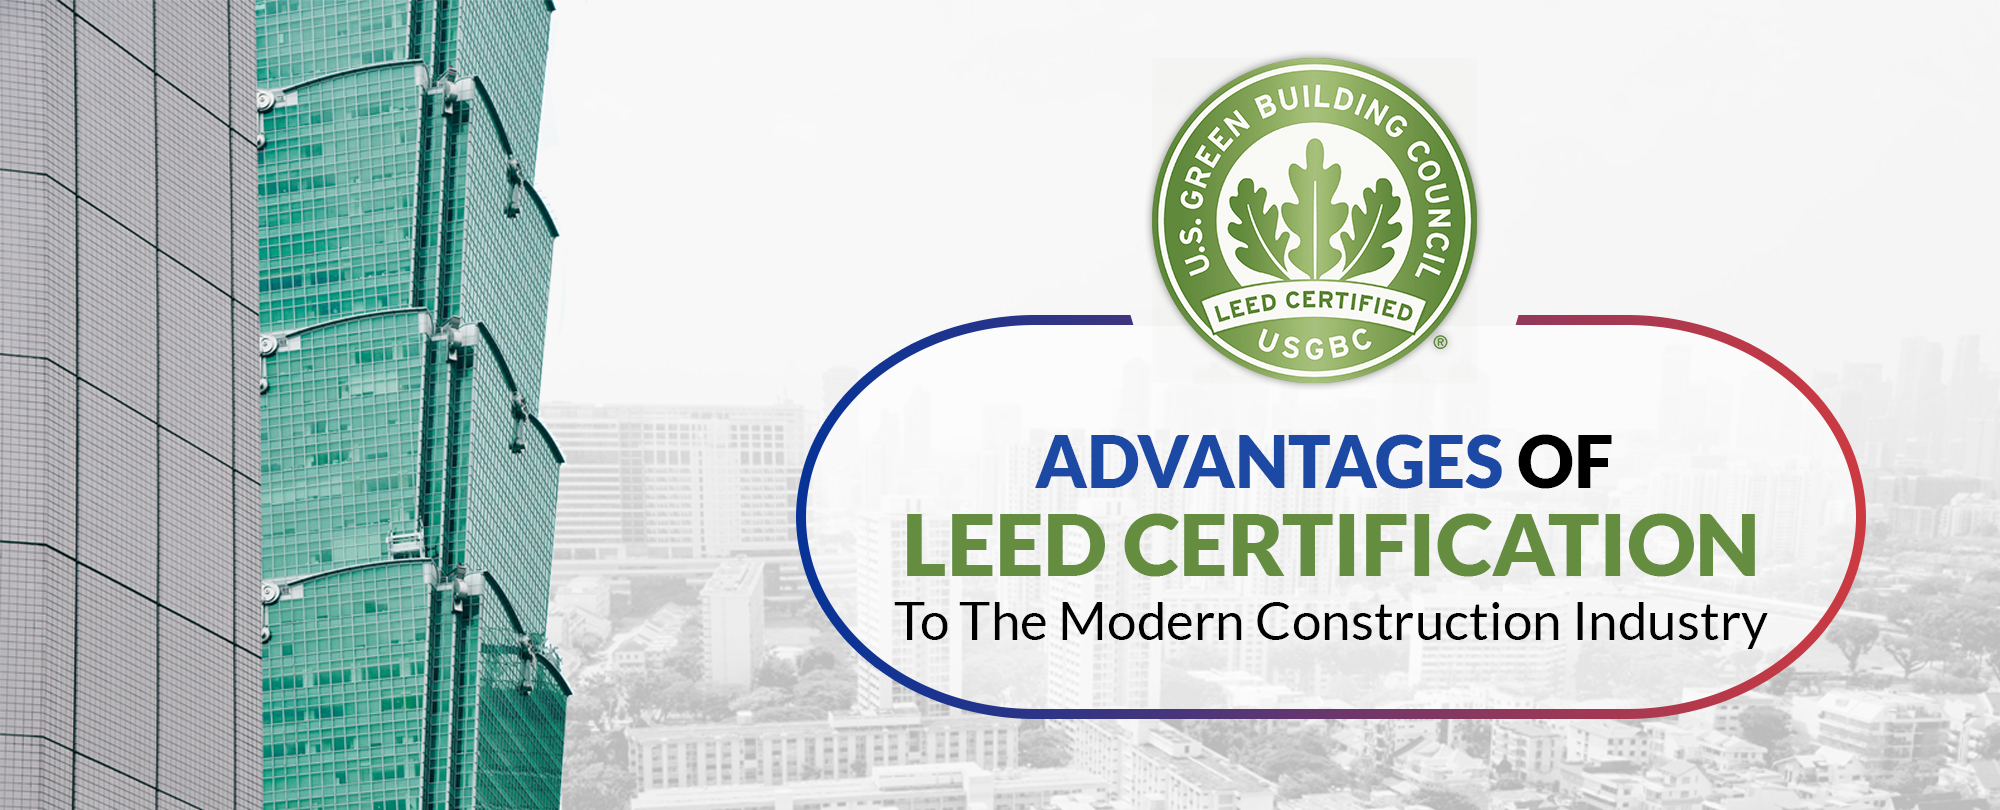 Advantages of leed certification